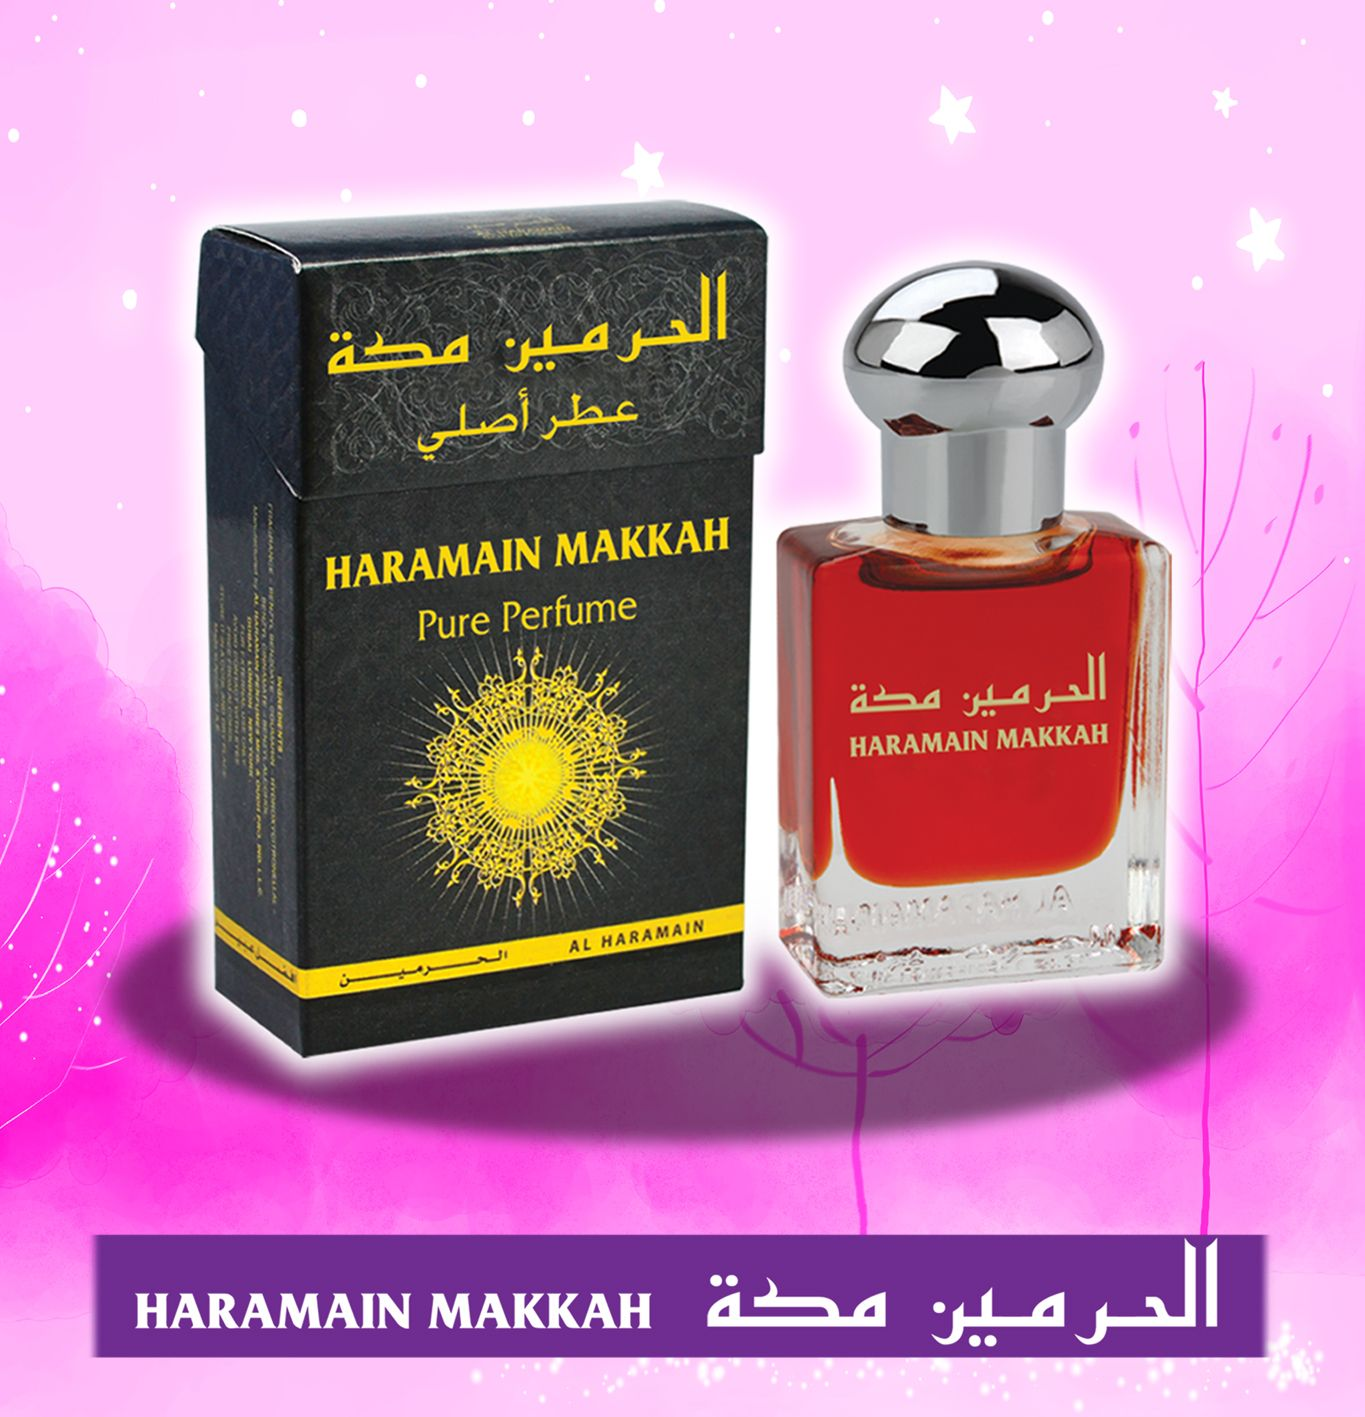 Al haramain makkah (15ml) in 2020 Online shopping stores